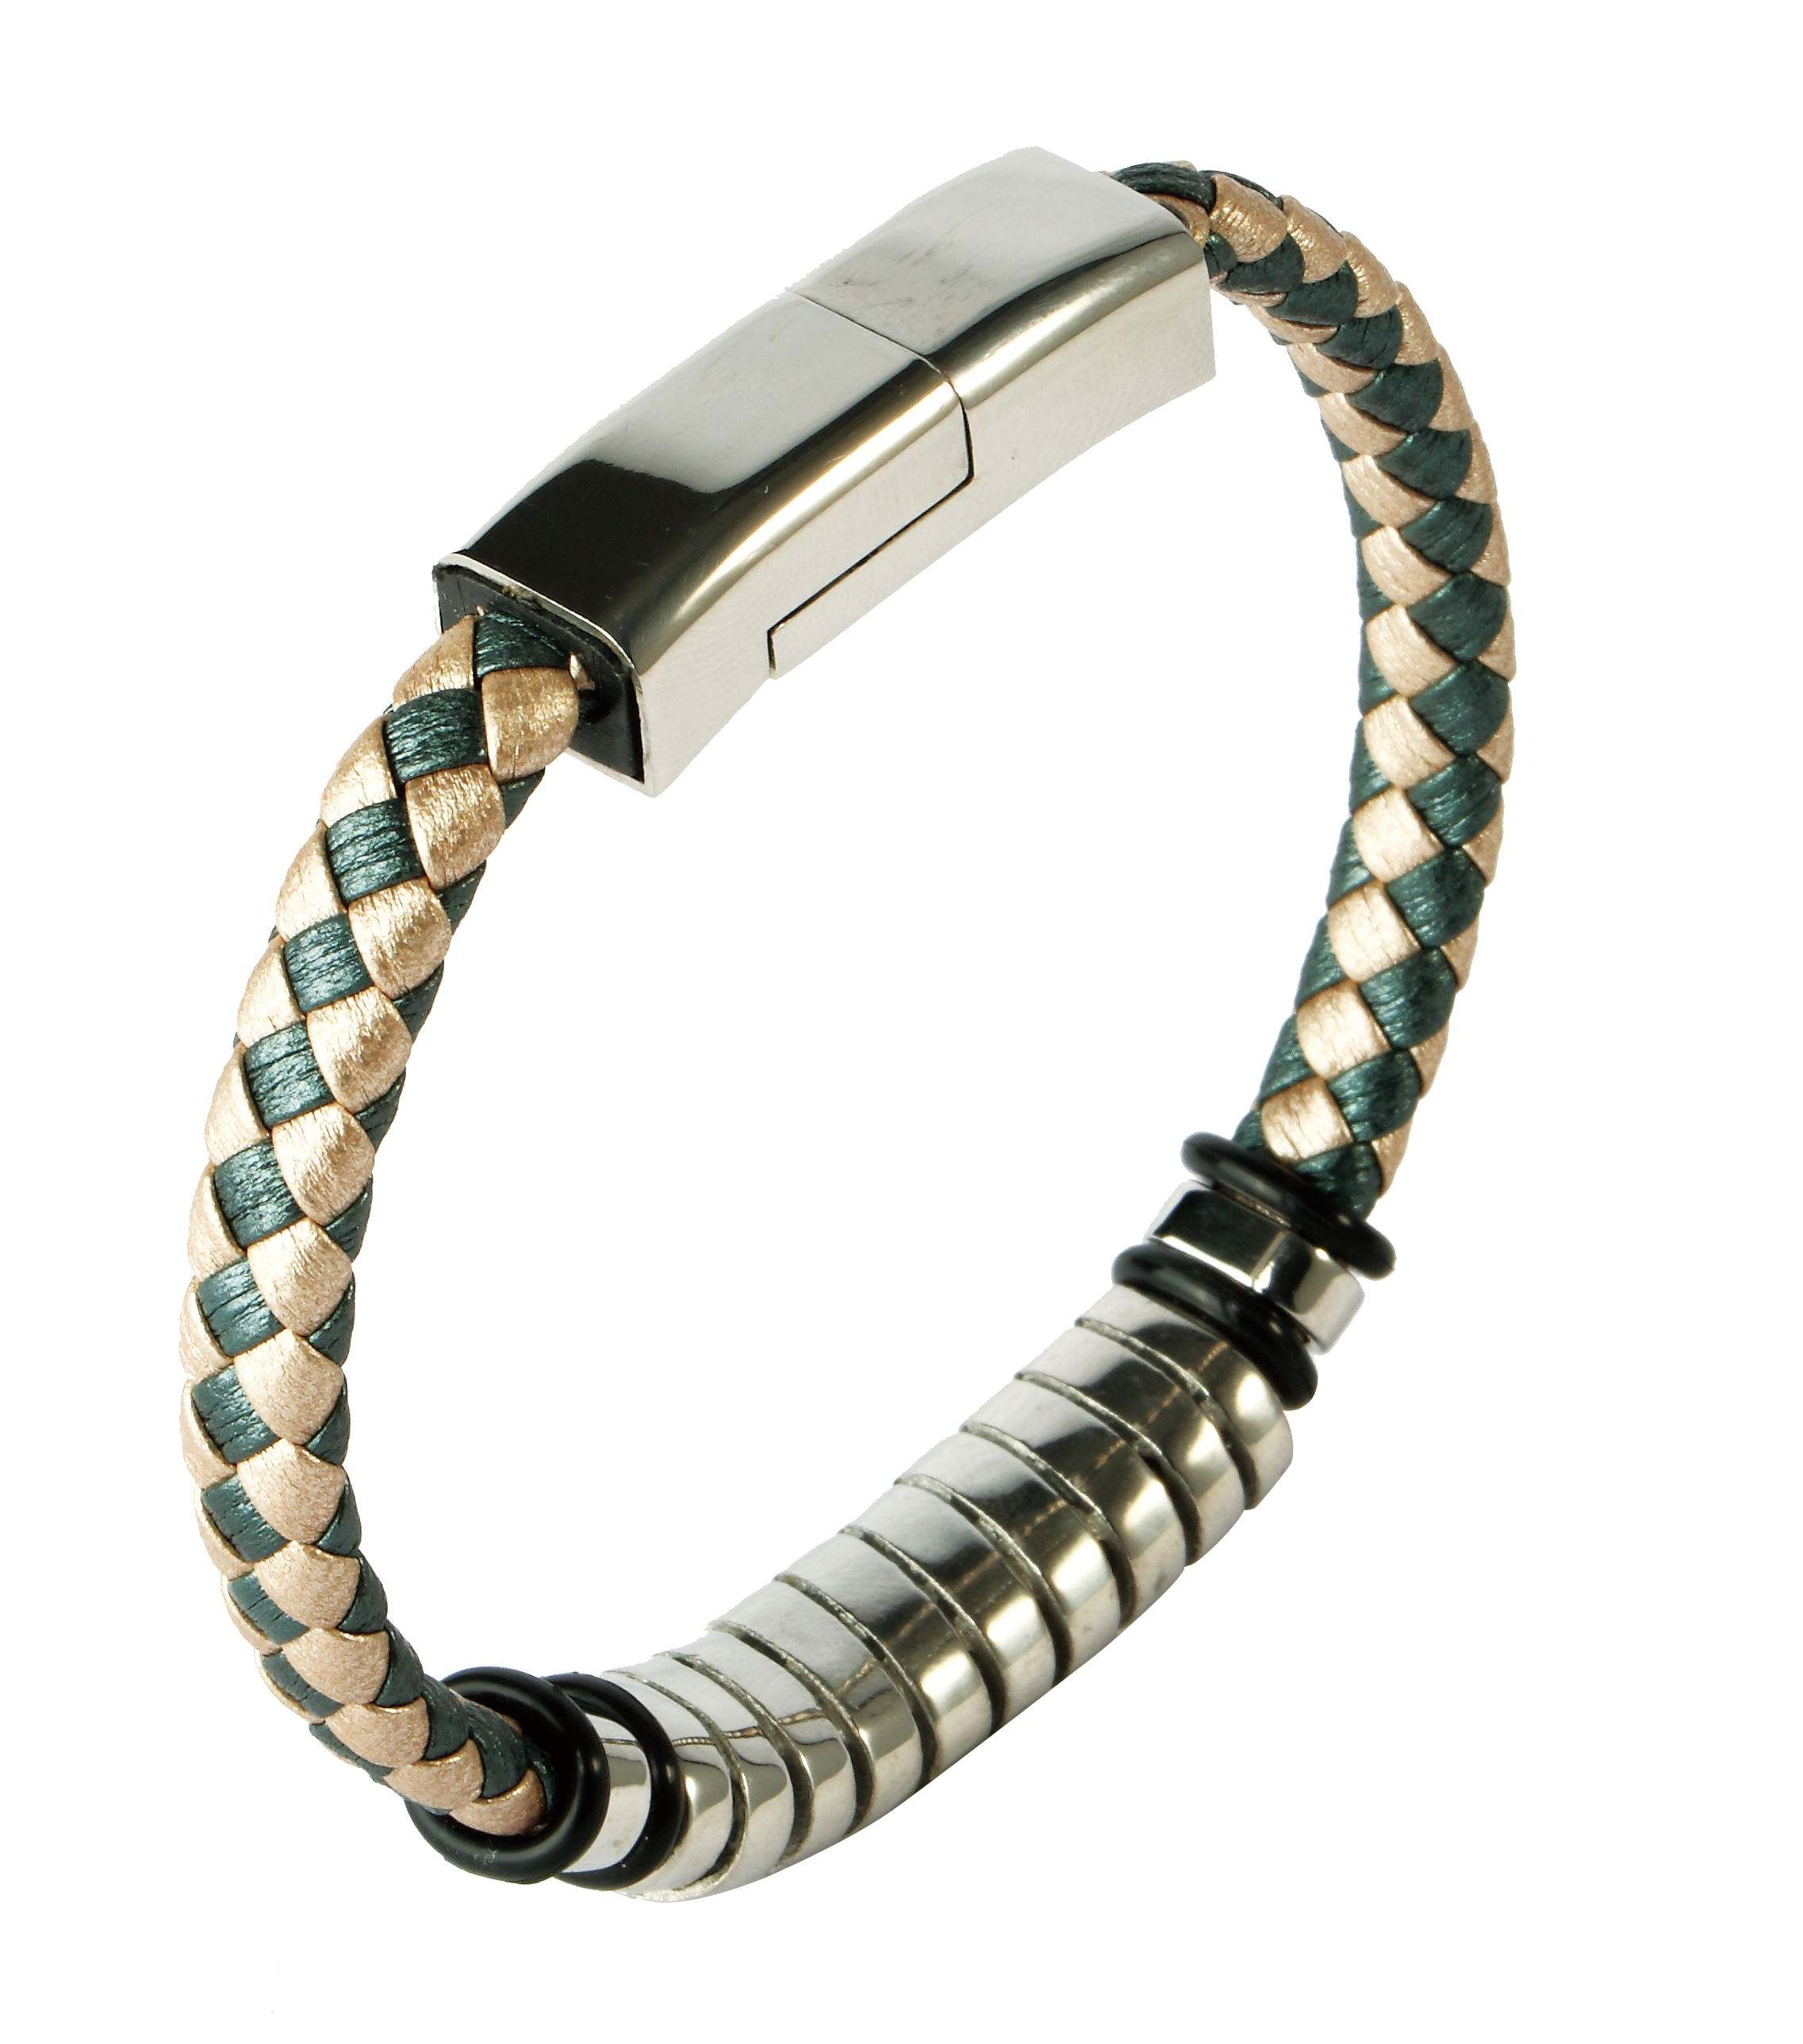 New Design Multi-function Fancy Jewelry USB Cable Design Male Stainless Steel Man Bracelet